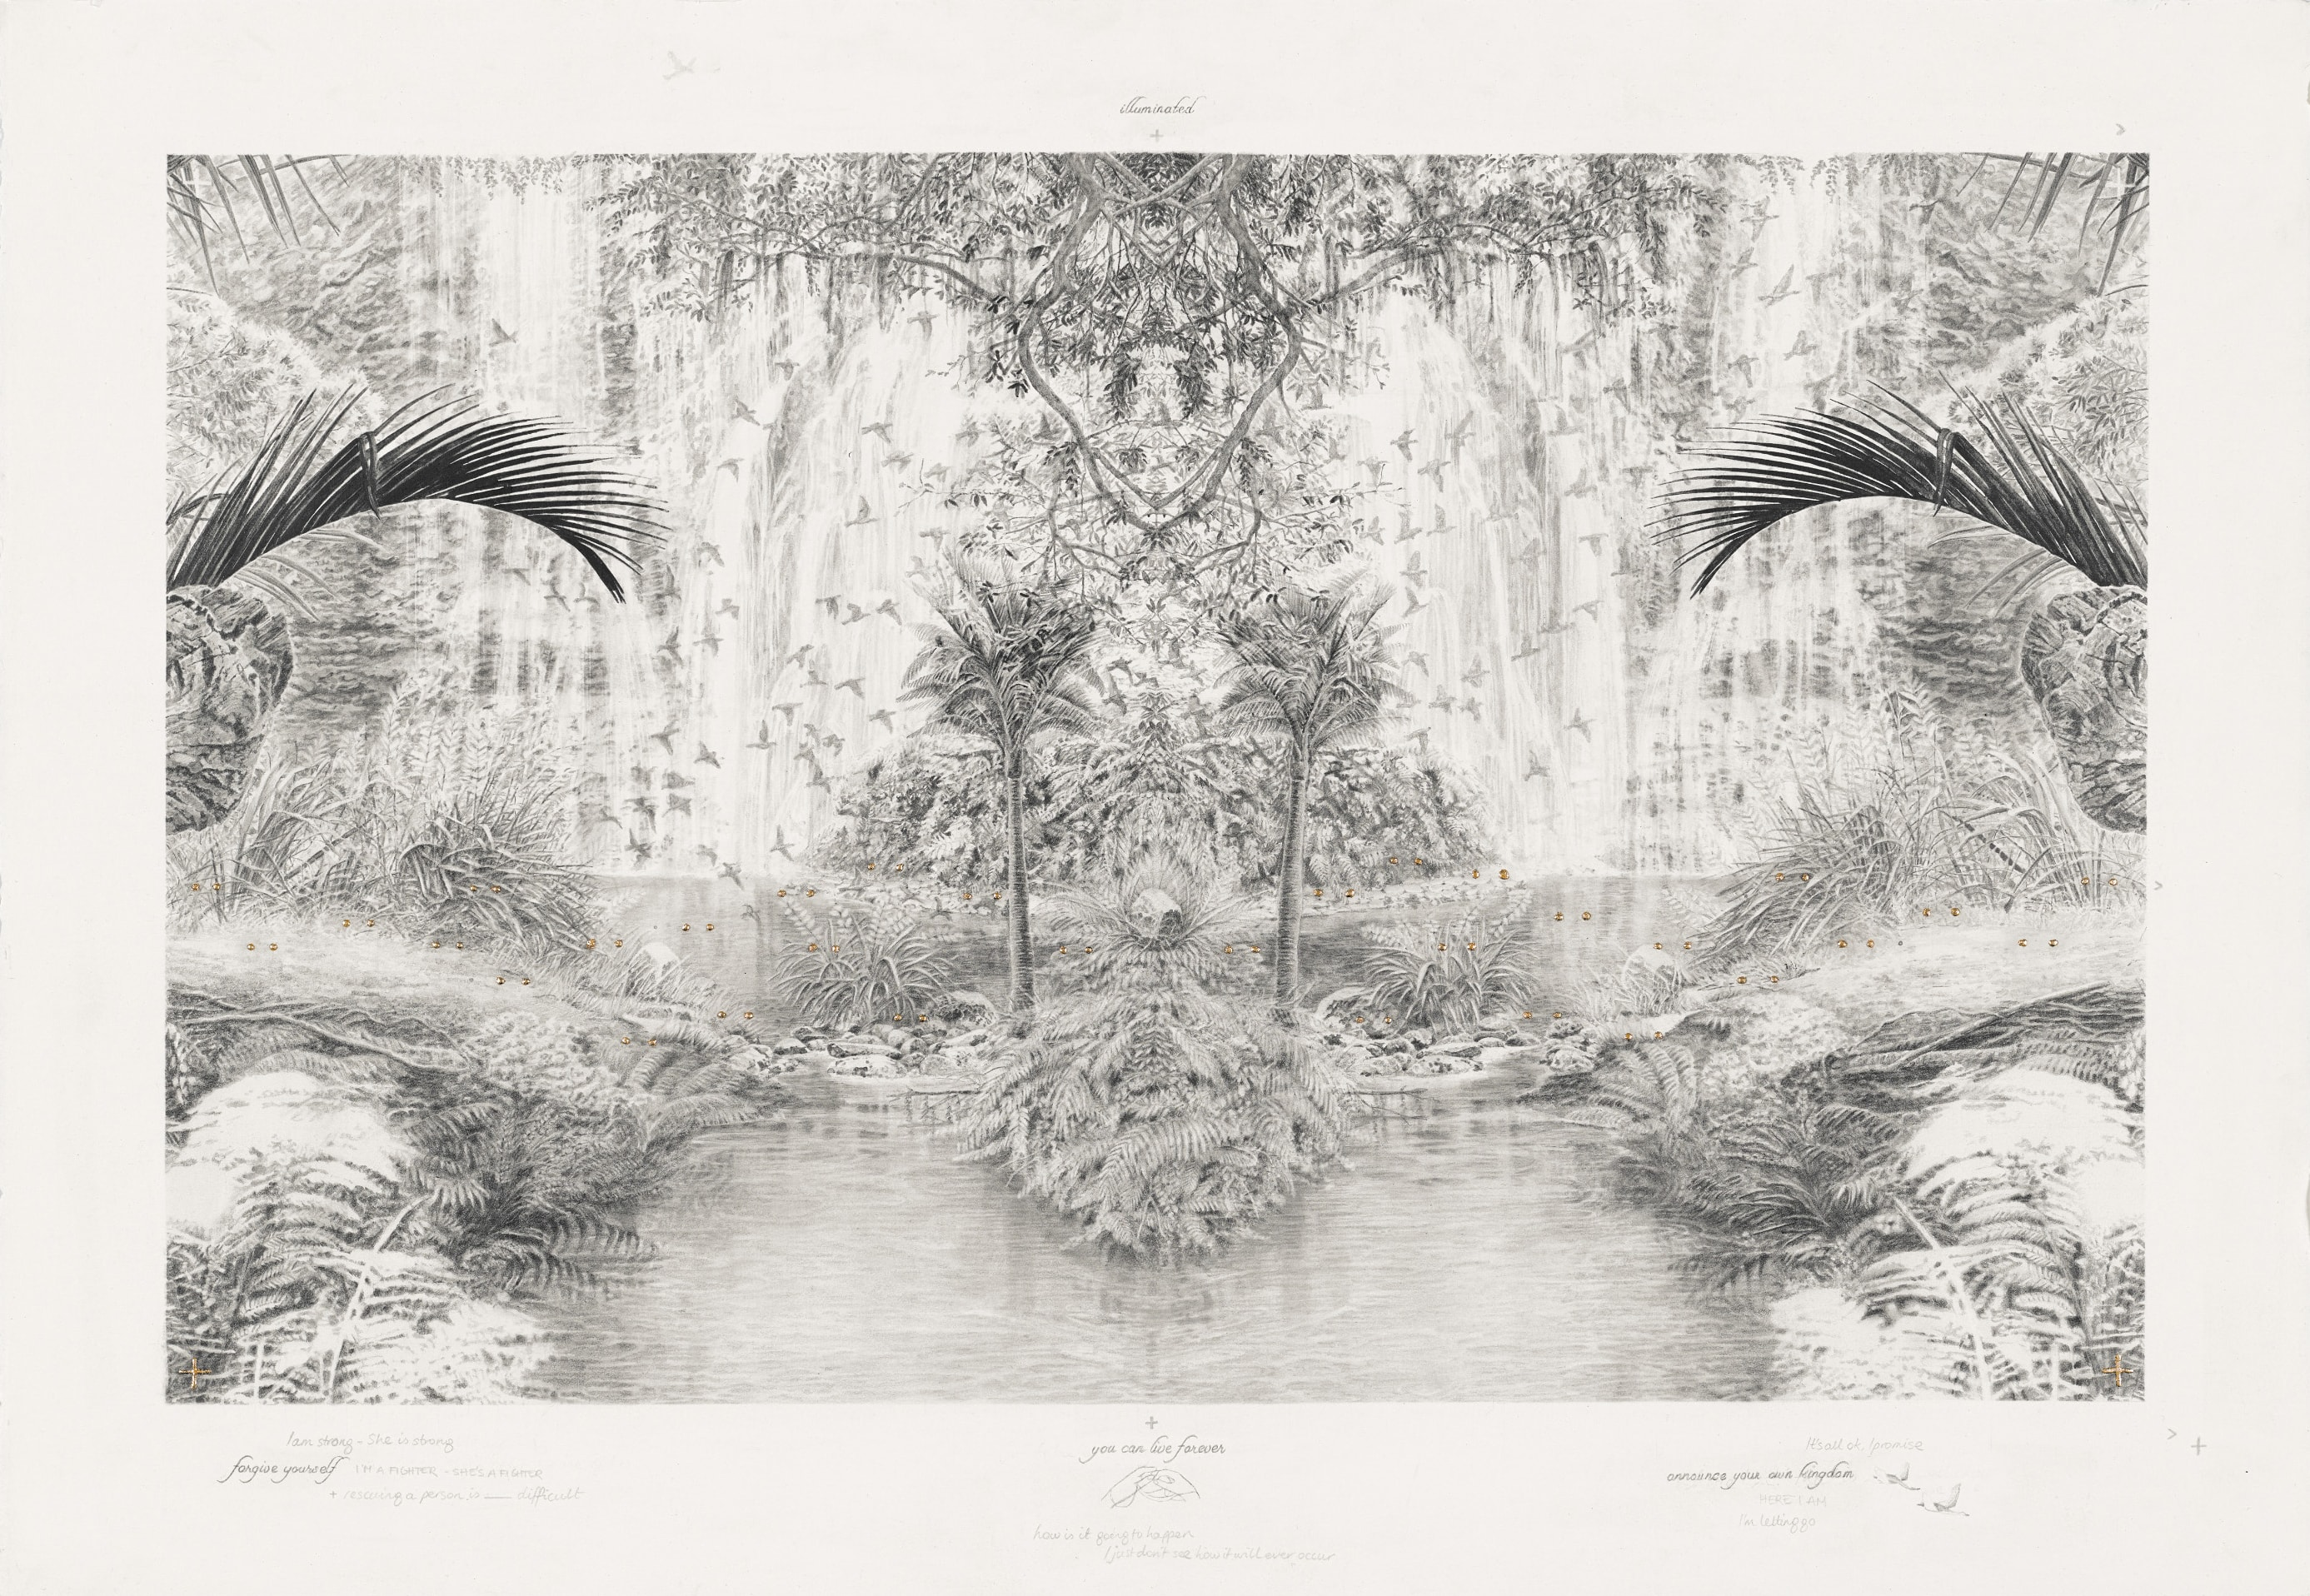 Becc Ország, Announce your kingdom (you can live forever), 2017, graphite pencil and 24kt gold leaf on paper, 52x75cm